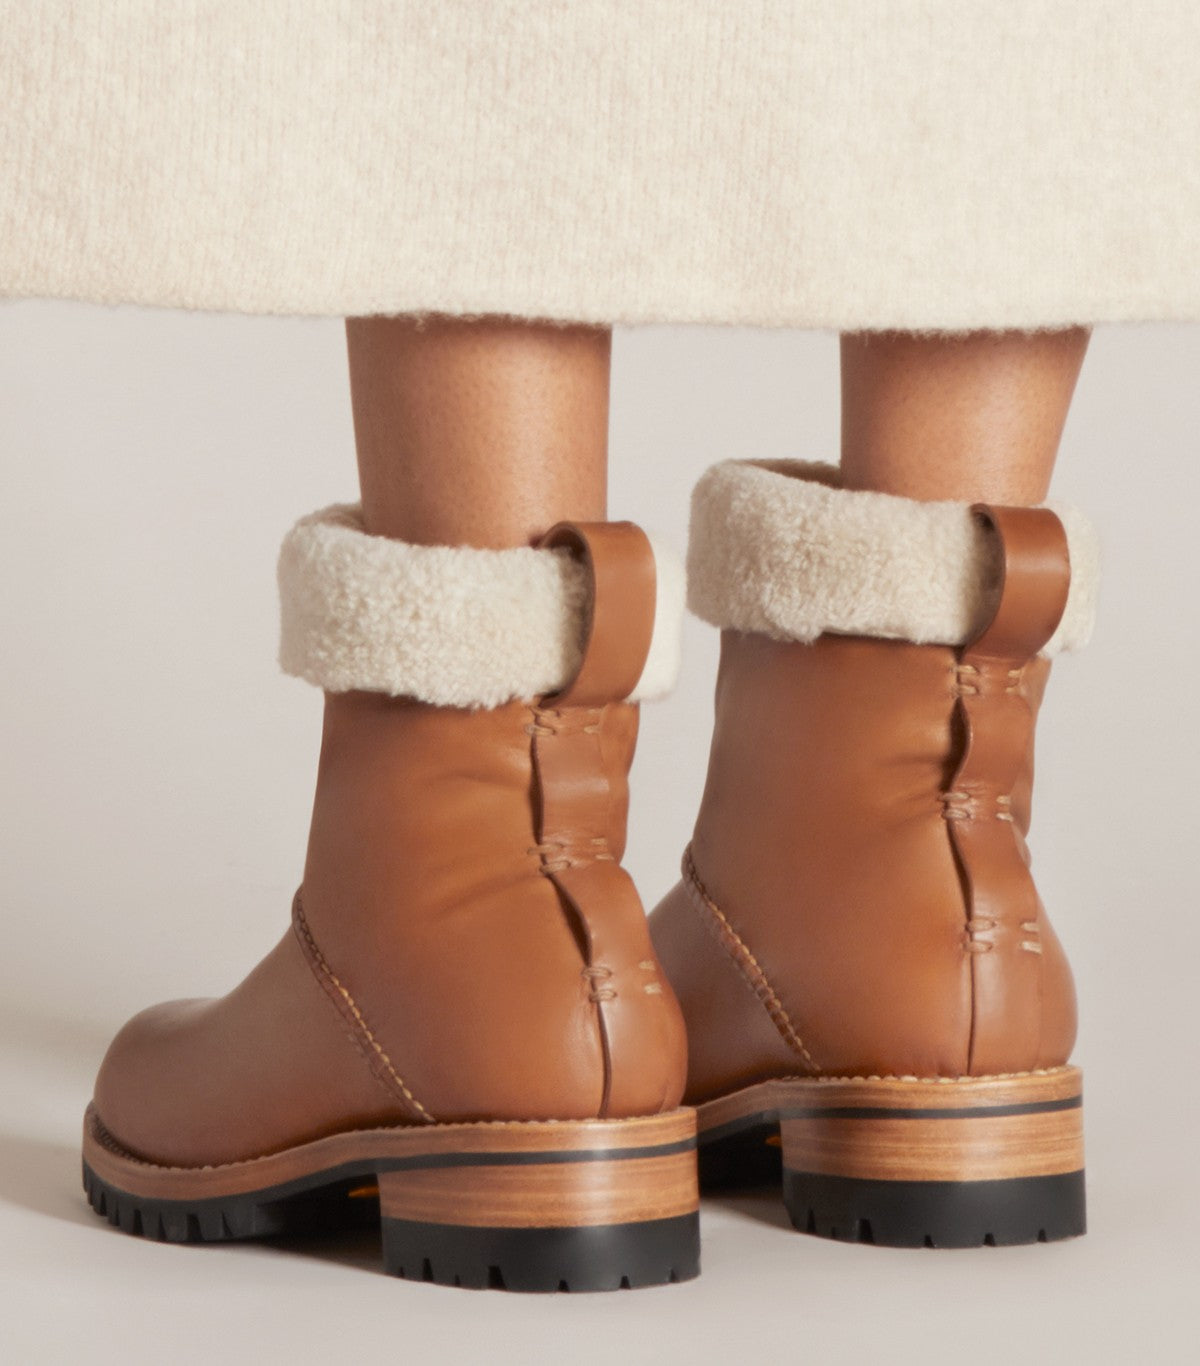 SHEARLING BOOT - WFSBTL_TAN